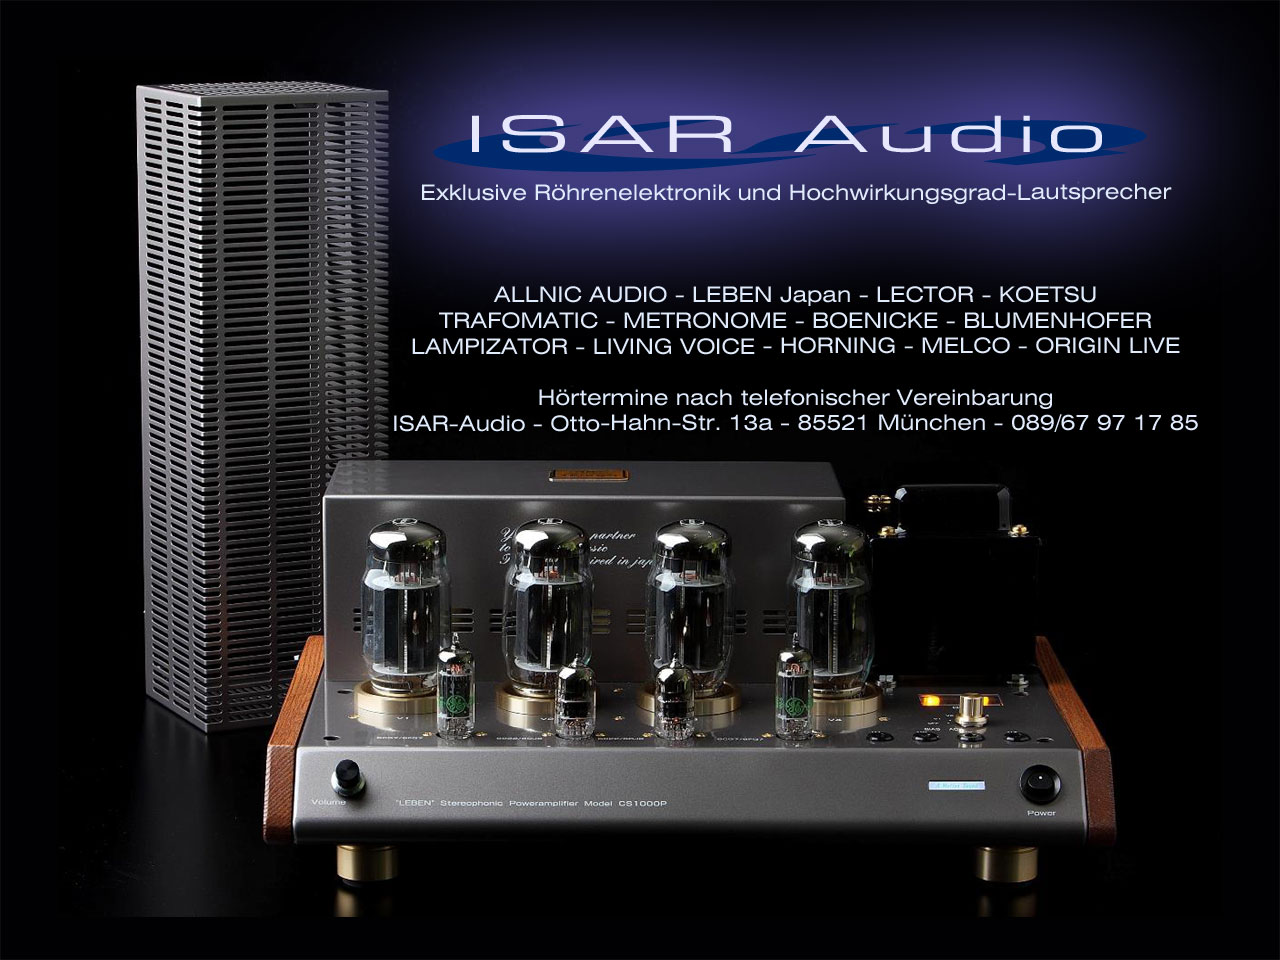 ISAR AUDIO